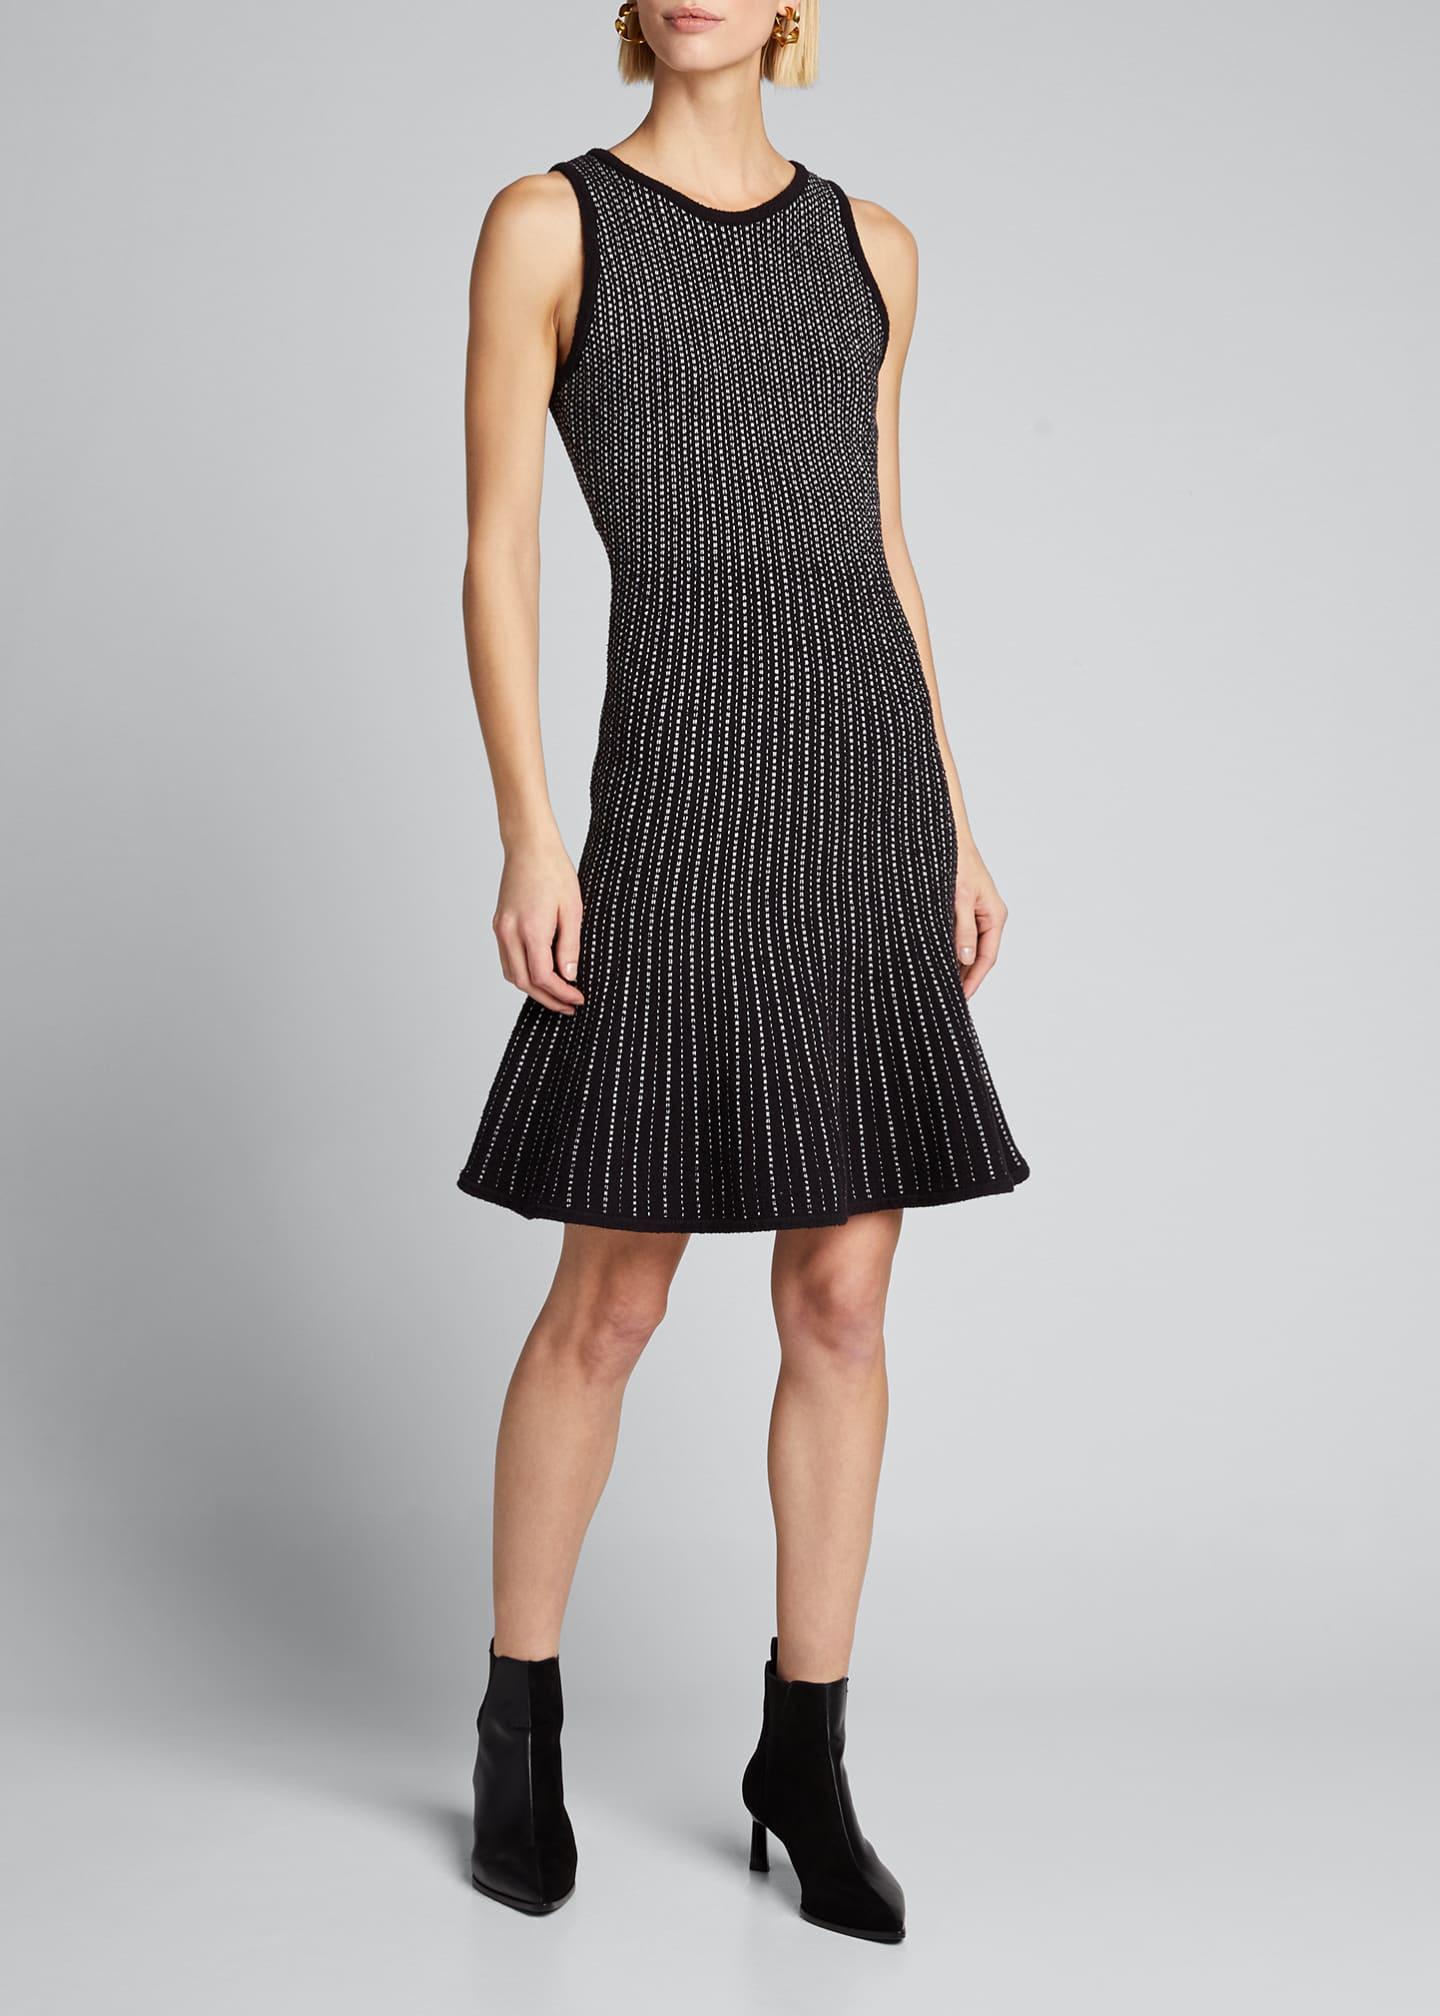 Image 3 of 5: Tweed Sleeveless Fit & Flow Dress